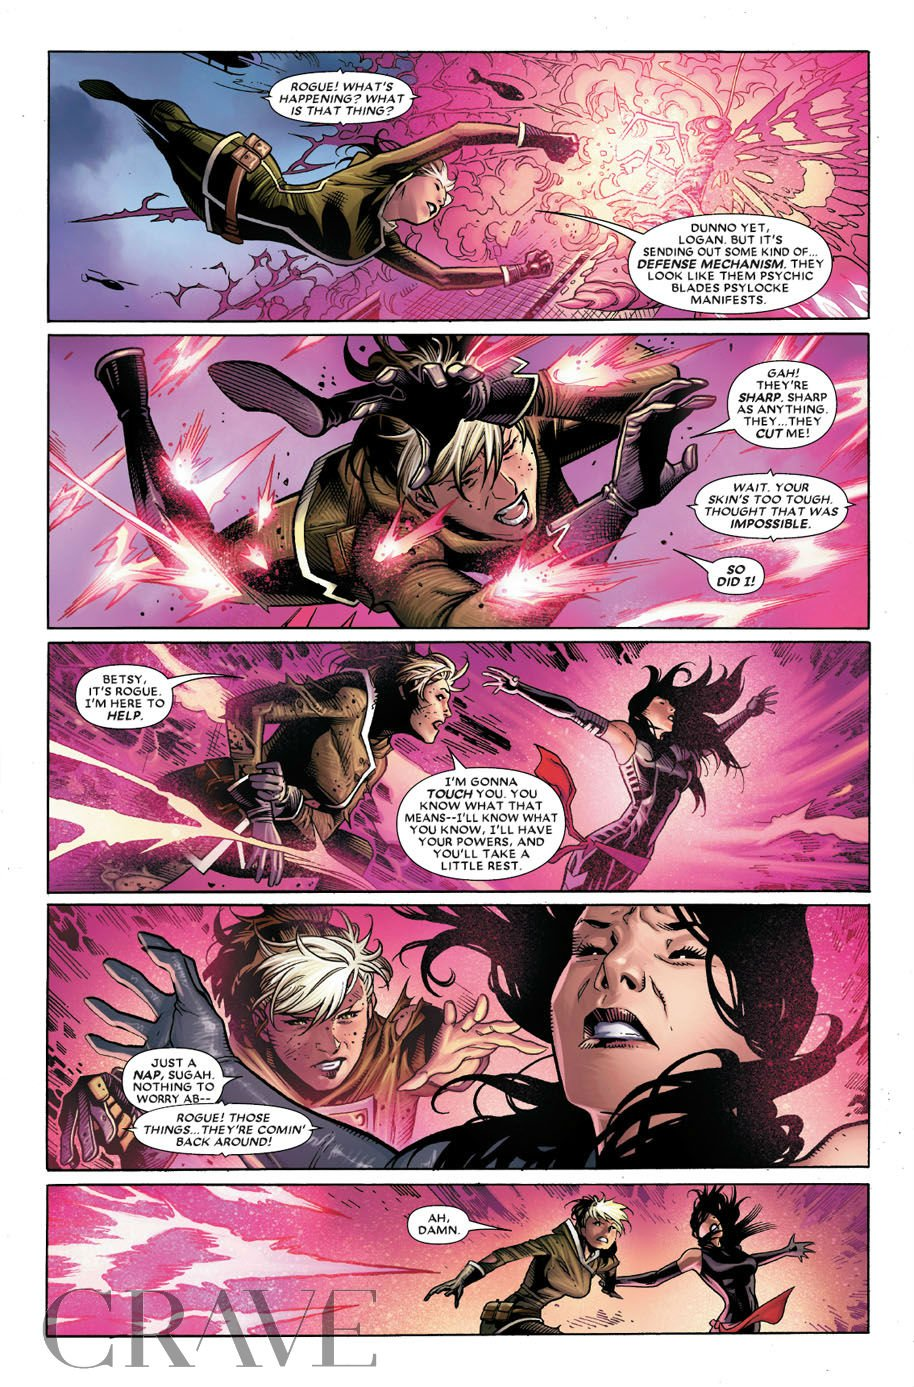 Astonishing X-Men 1 preview page 4